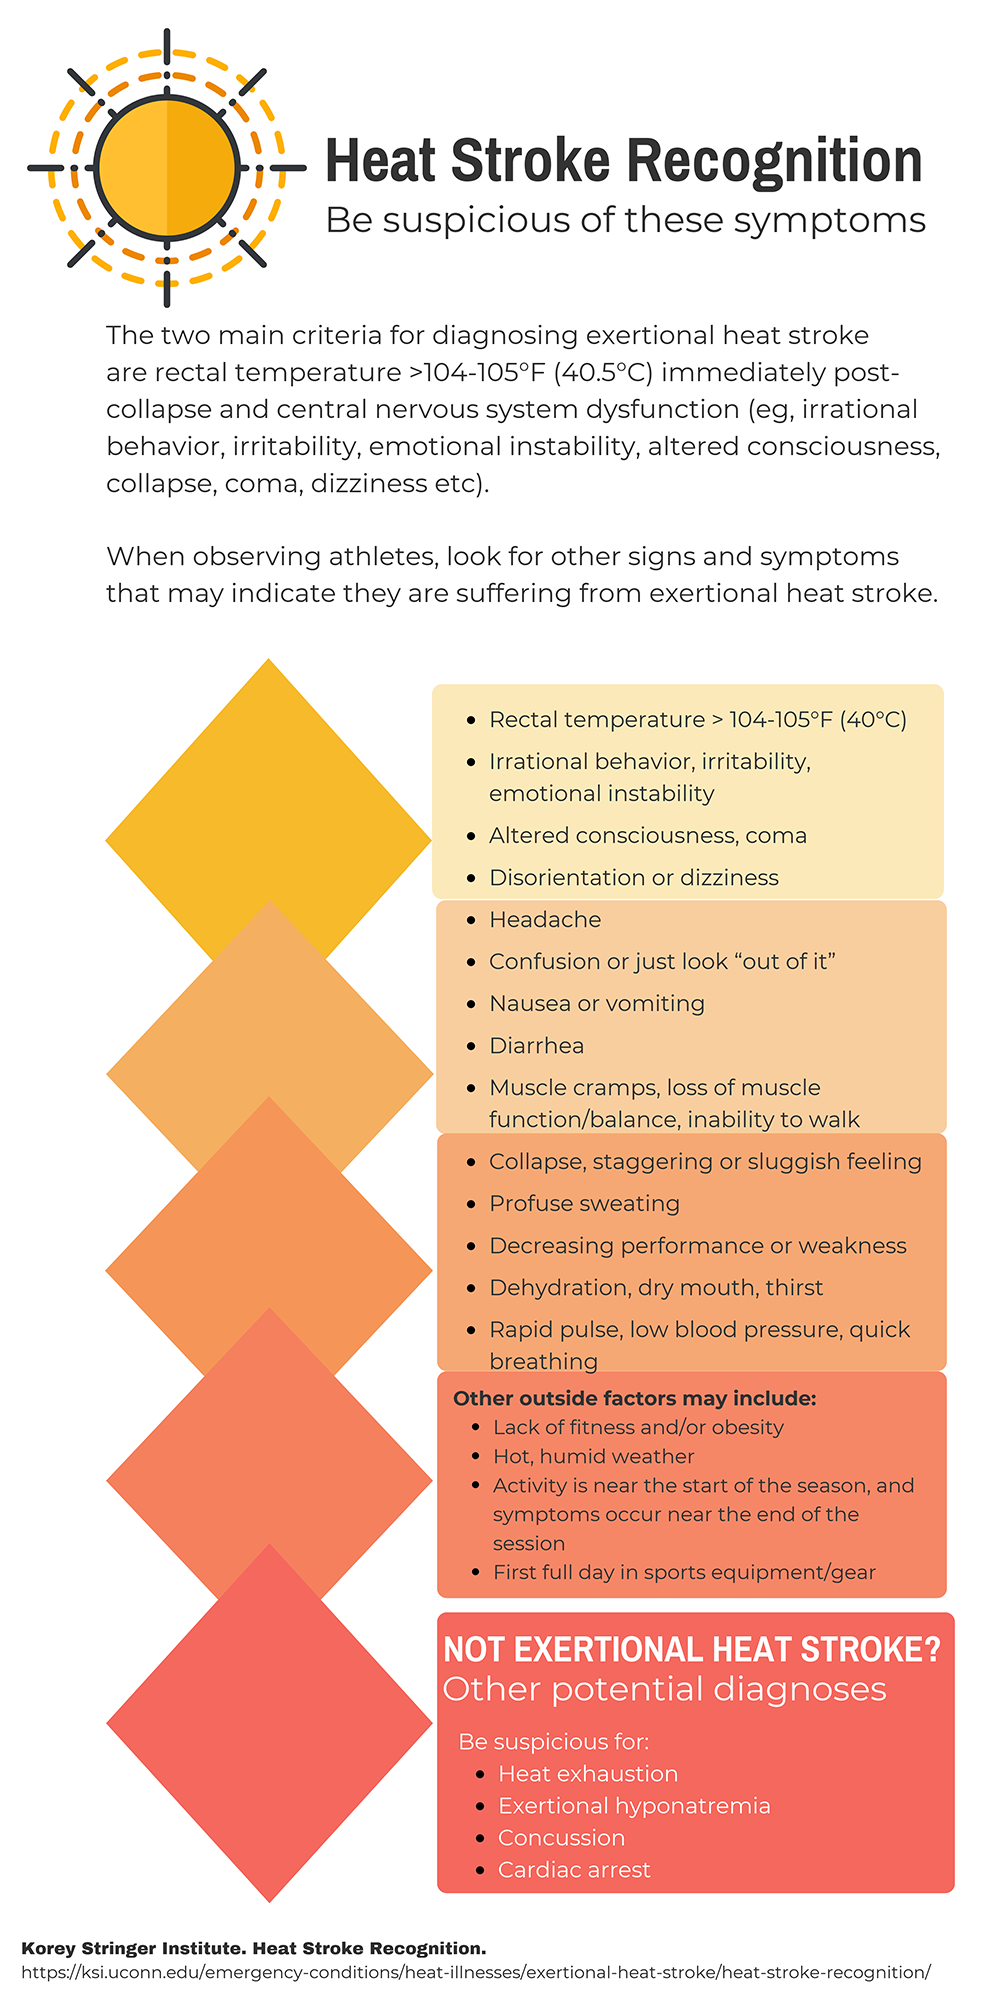 Heat Stroke Recognition: Suspicious Symptoms